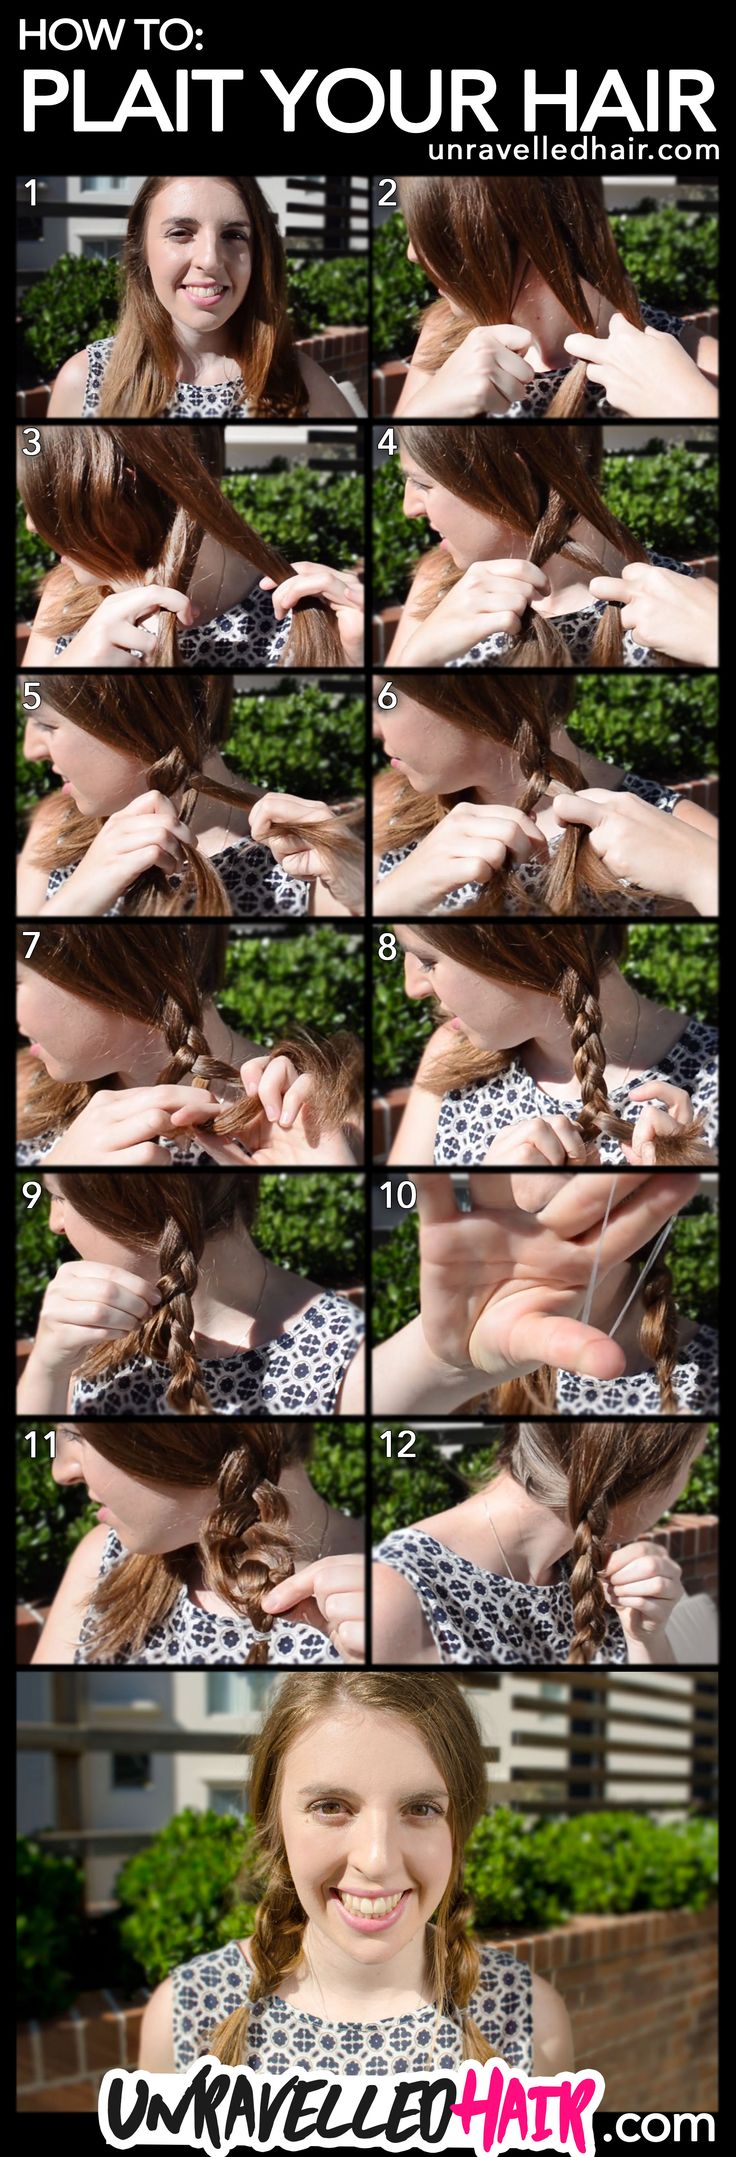 How to Plait Your Hair Tutorial